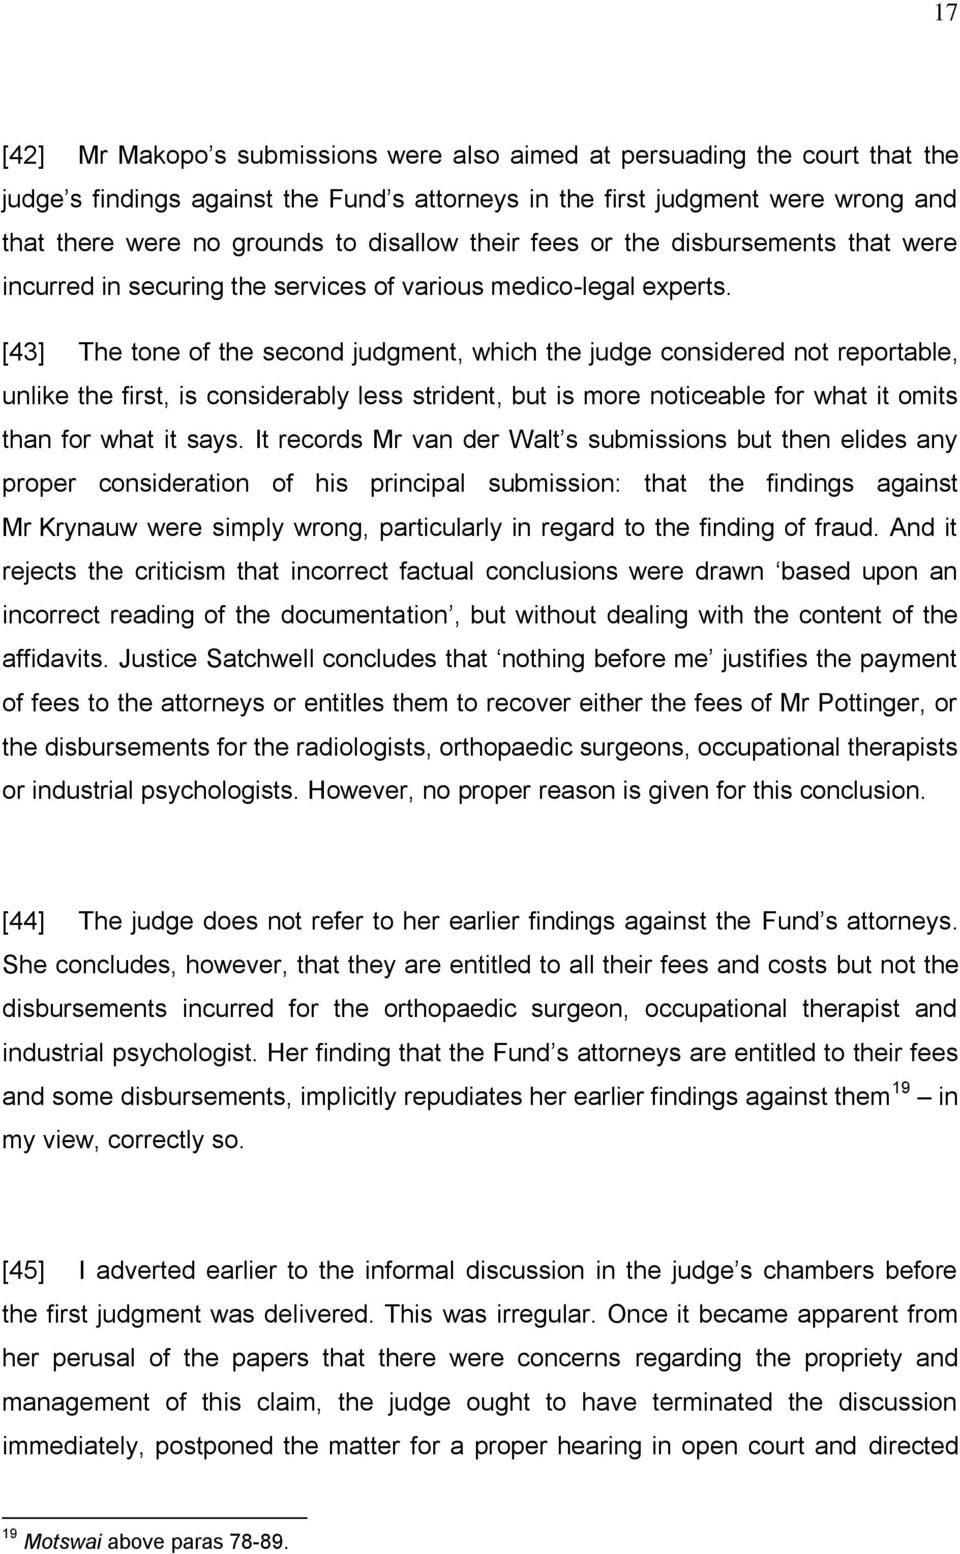 [43] The tone of the second judgment, which the judge considered not reportable, unlike the first, is considerably less strident, but is more noticeable for what it omits than for what it says.